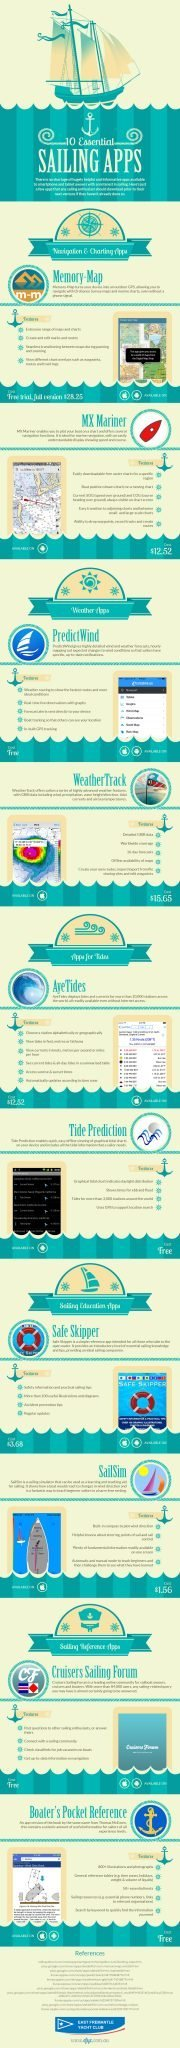 10 Essential Sailing Apps - Infographic